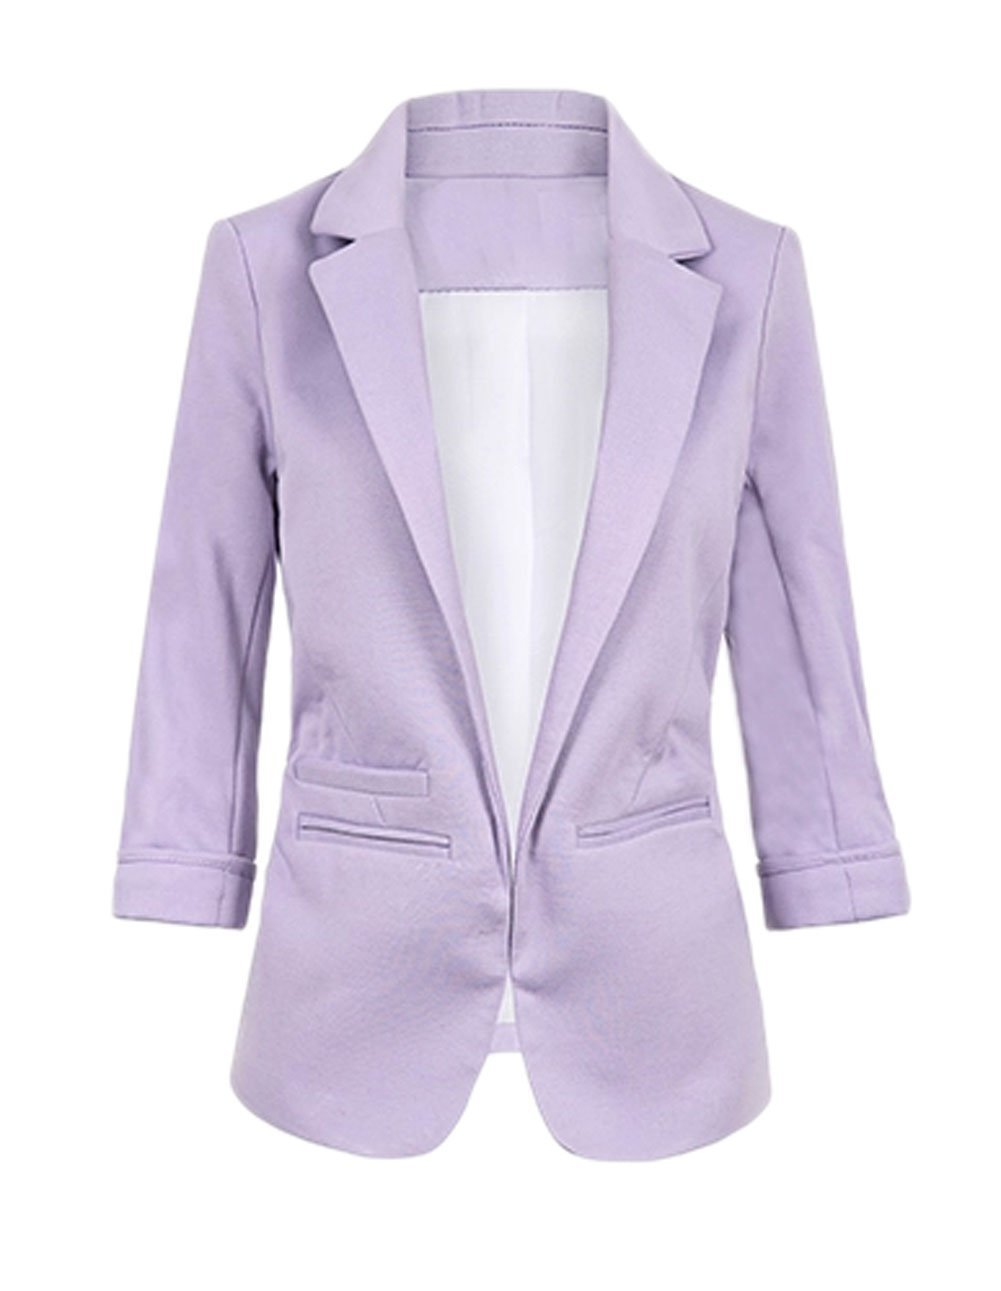 Face N Face Women's Cotton Rolled Up Sleeve No-Buckle Blazer Jacket Suits Medium Purple